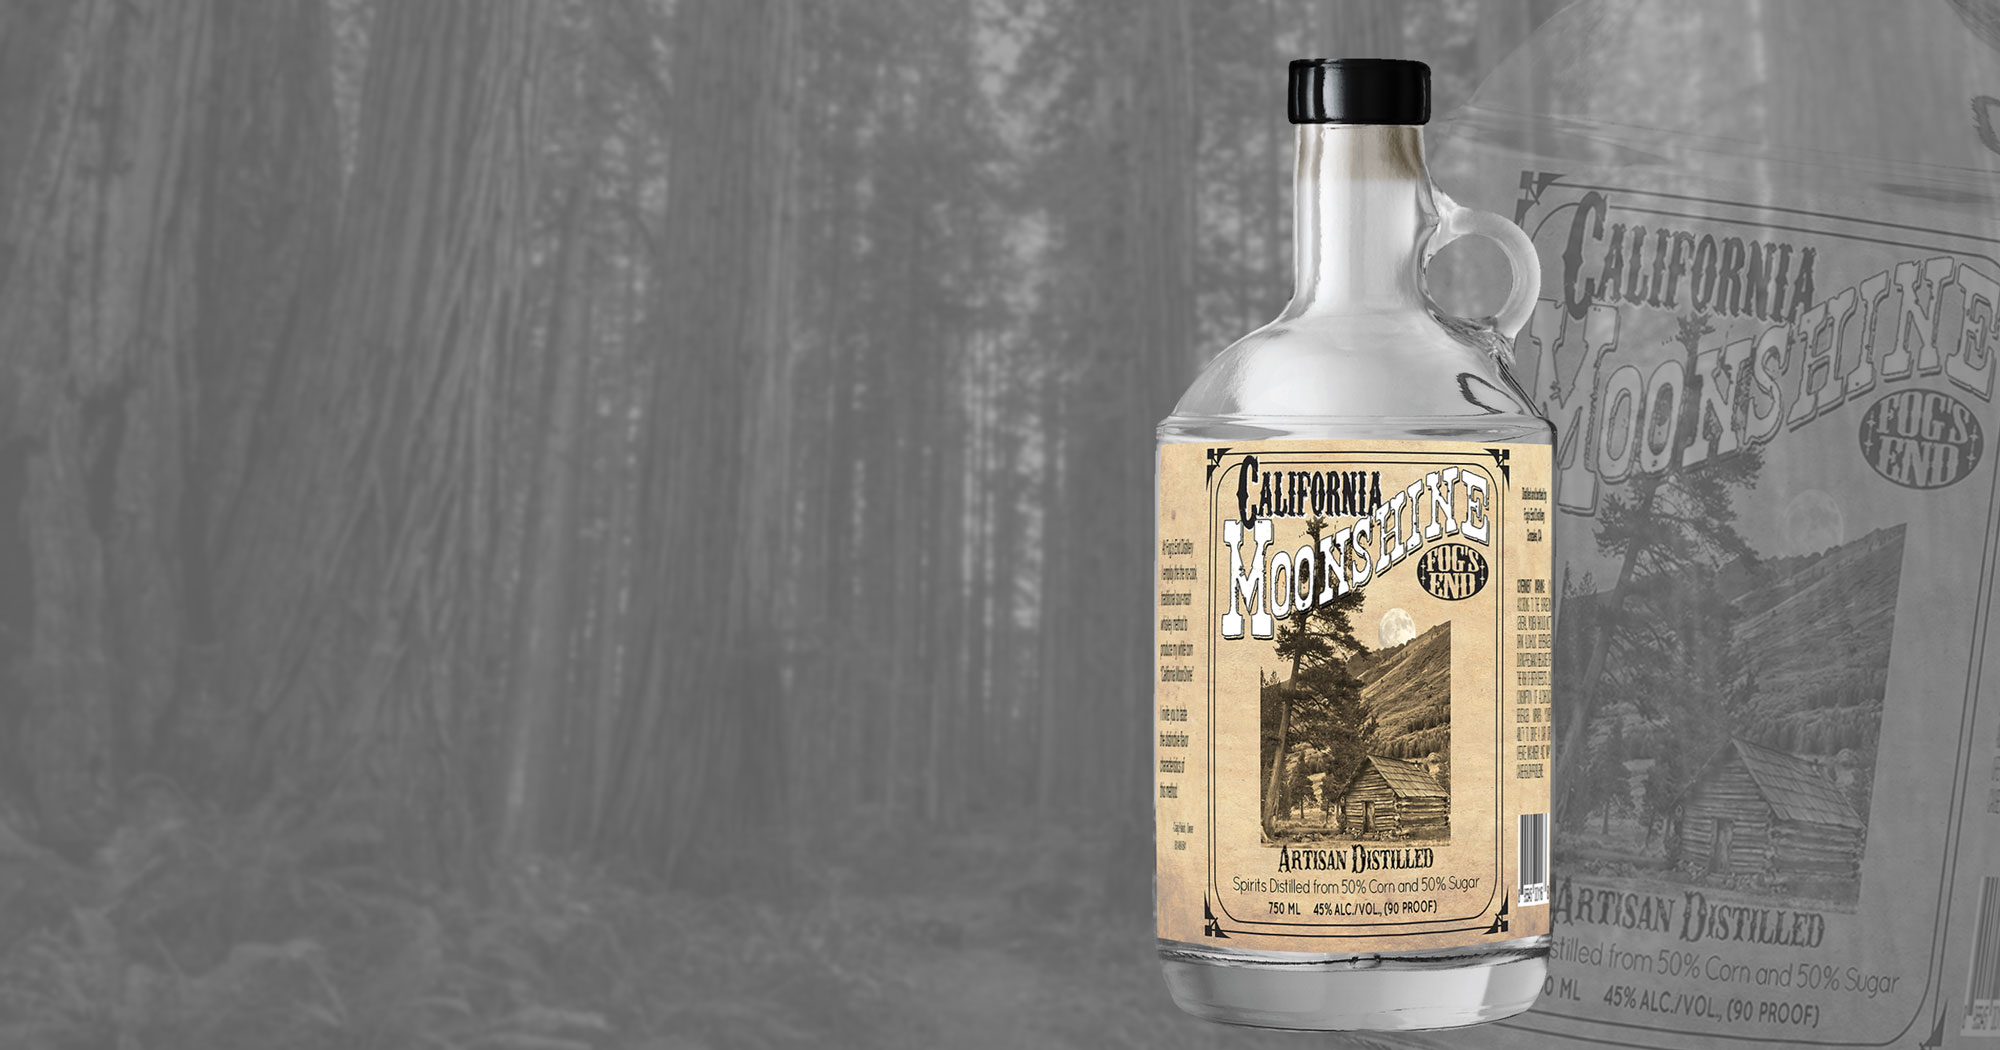 California Moonshine with the woods in the background